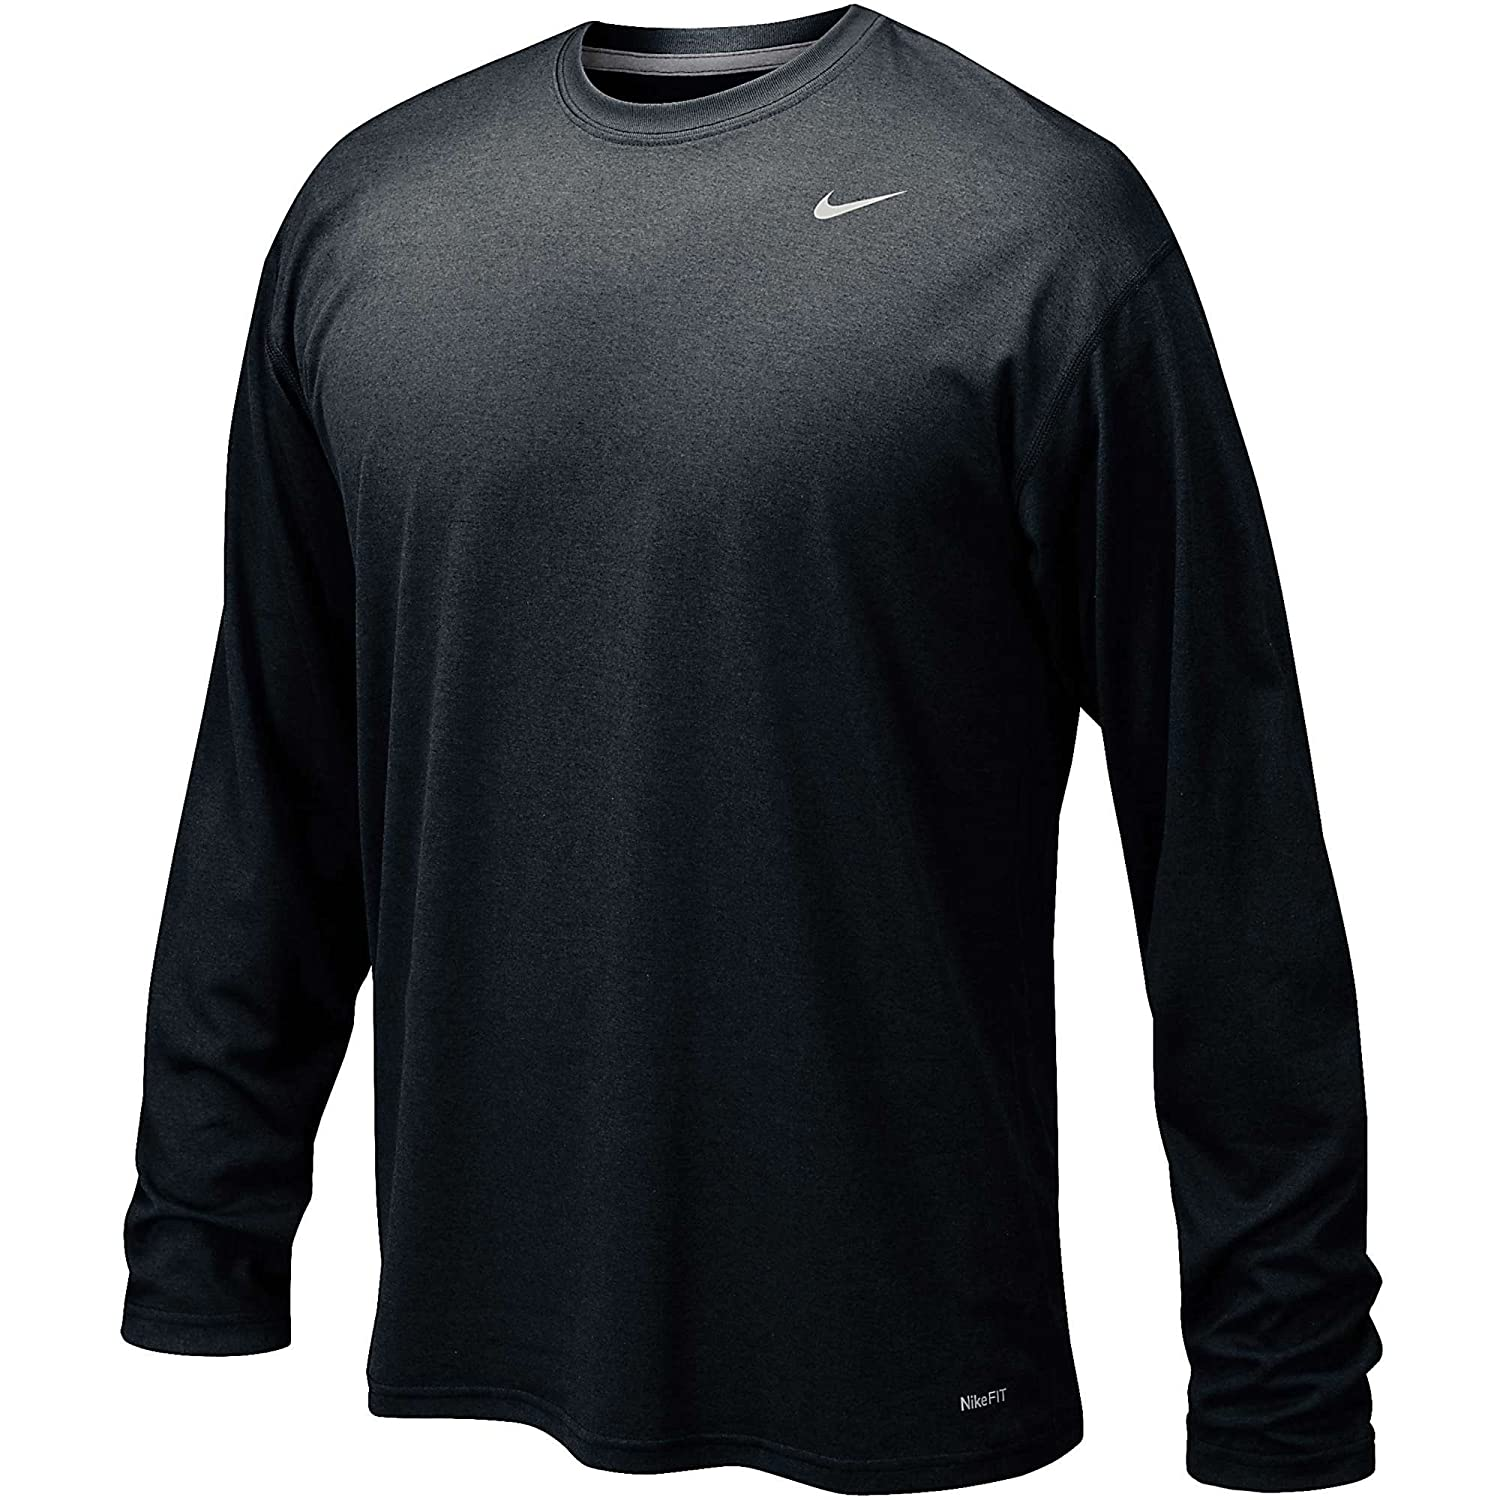 406101b2 Nike Men's Legend Long Sleeve Tee at Amazon Men's Clothing store: Athletic  Shirts